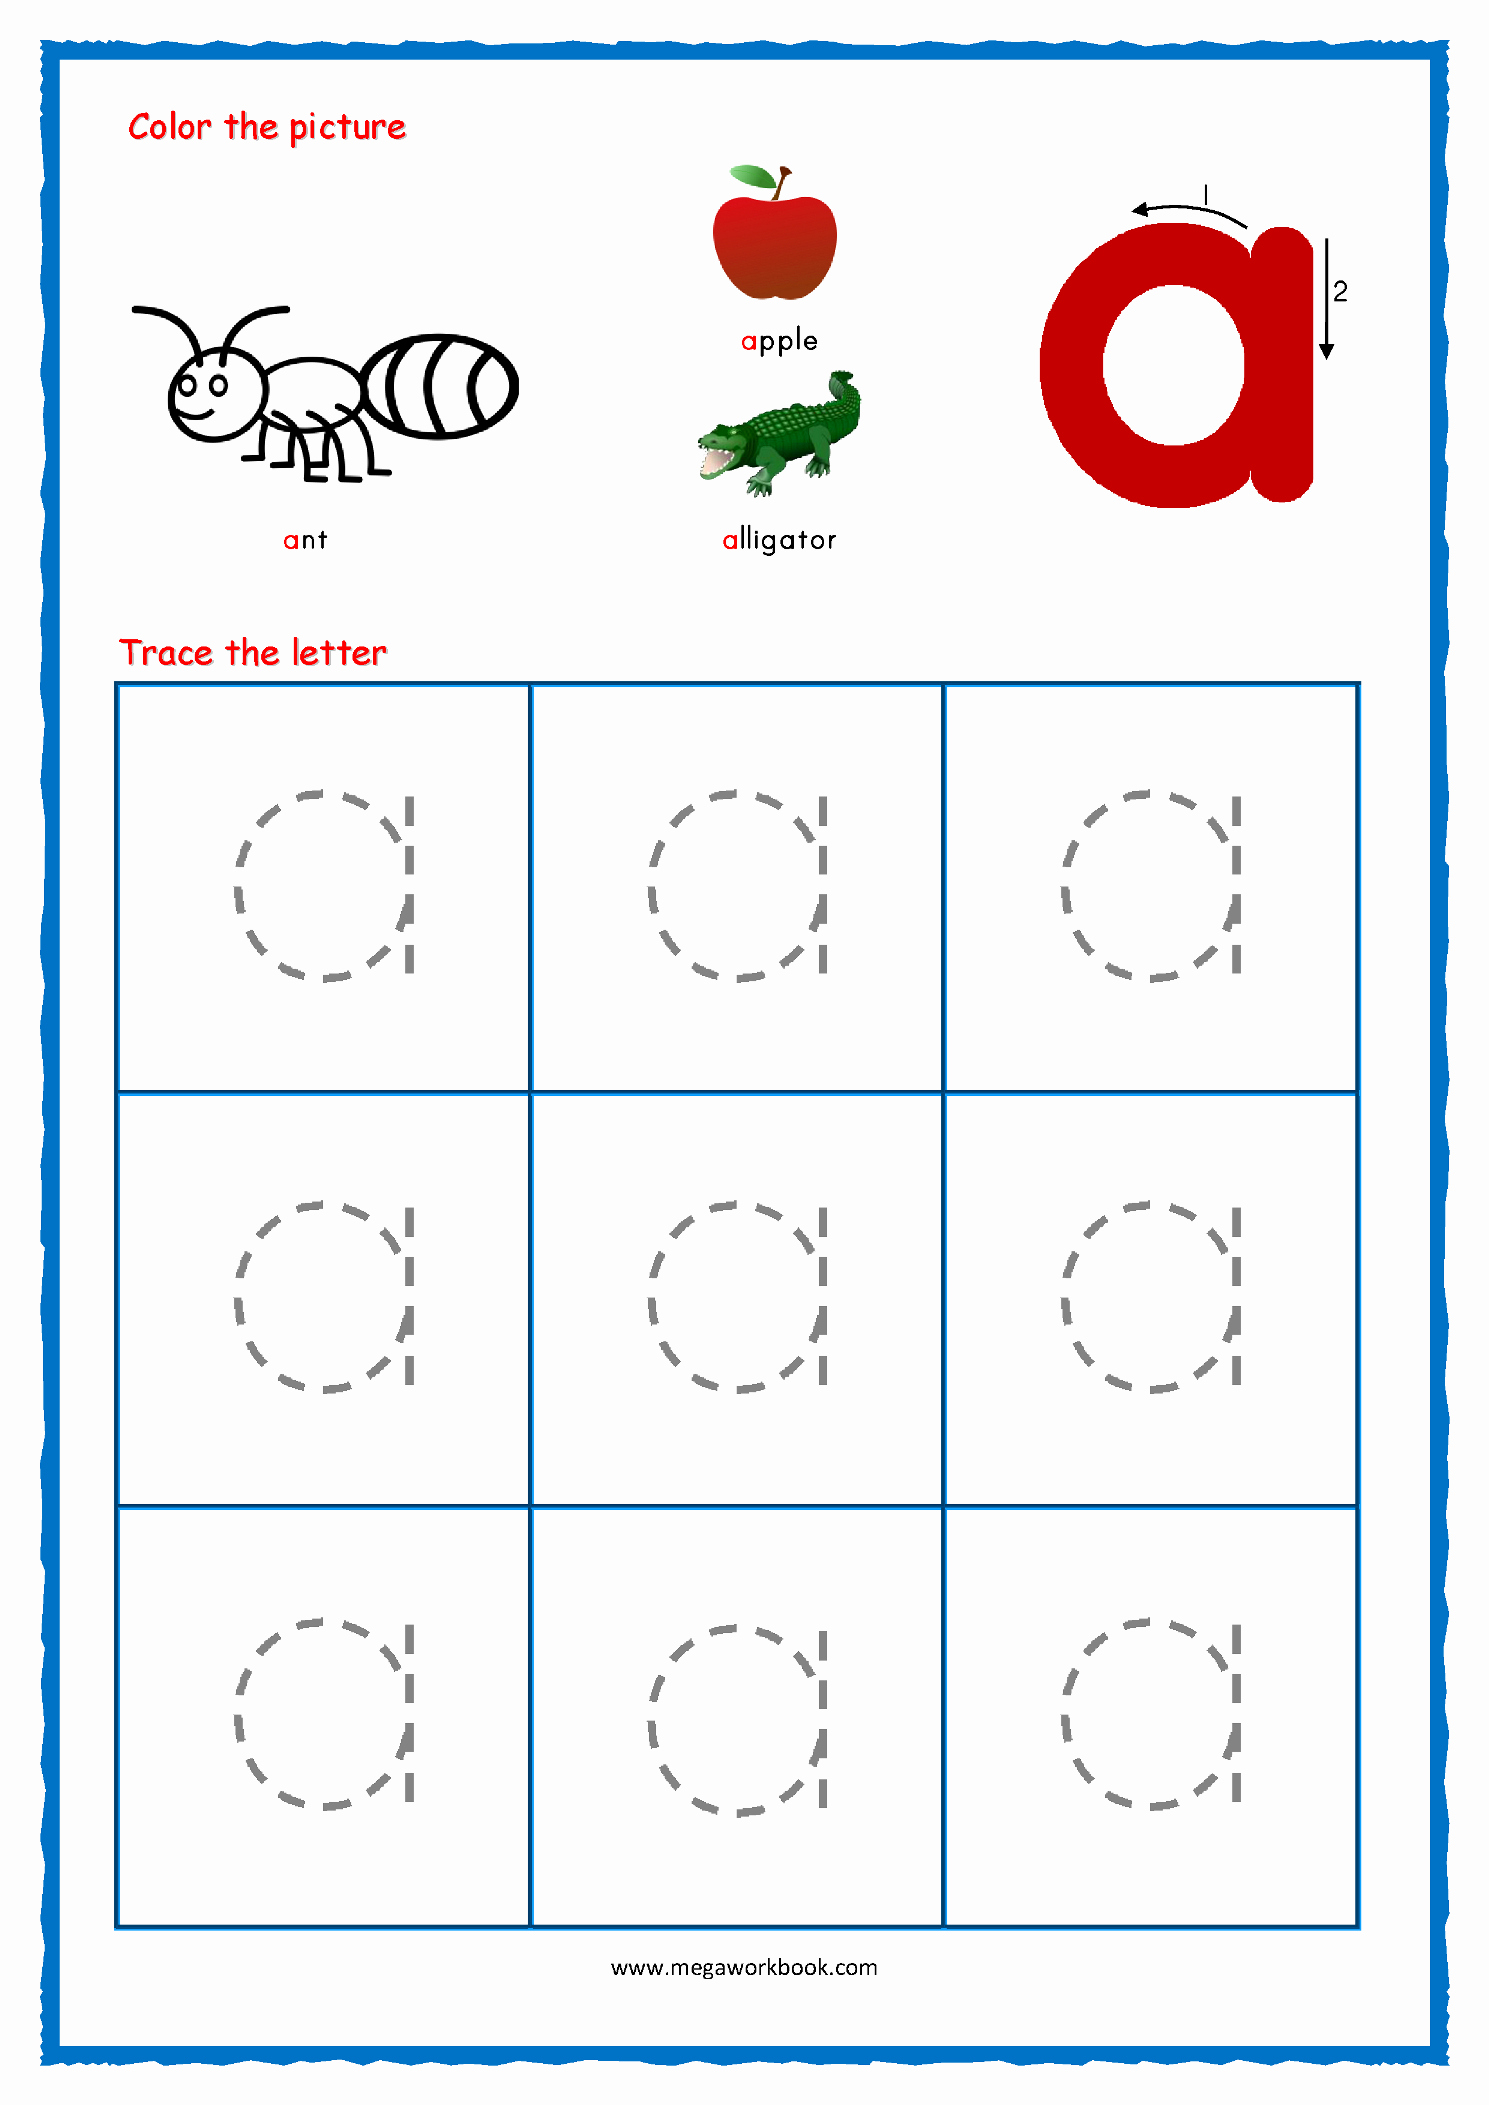 Lowercase Alphabet Tracing Worksheets Fresh Lowercase Letters Tracing Worksheets Pdf